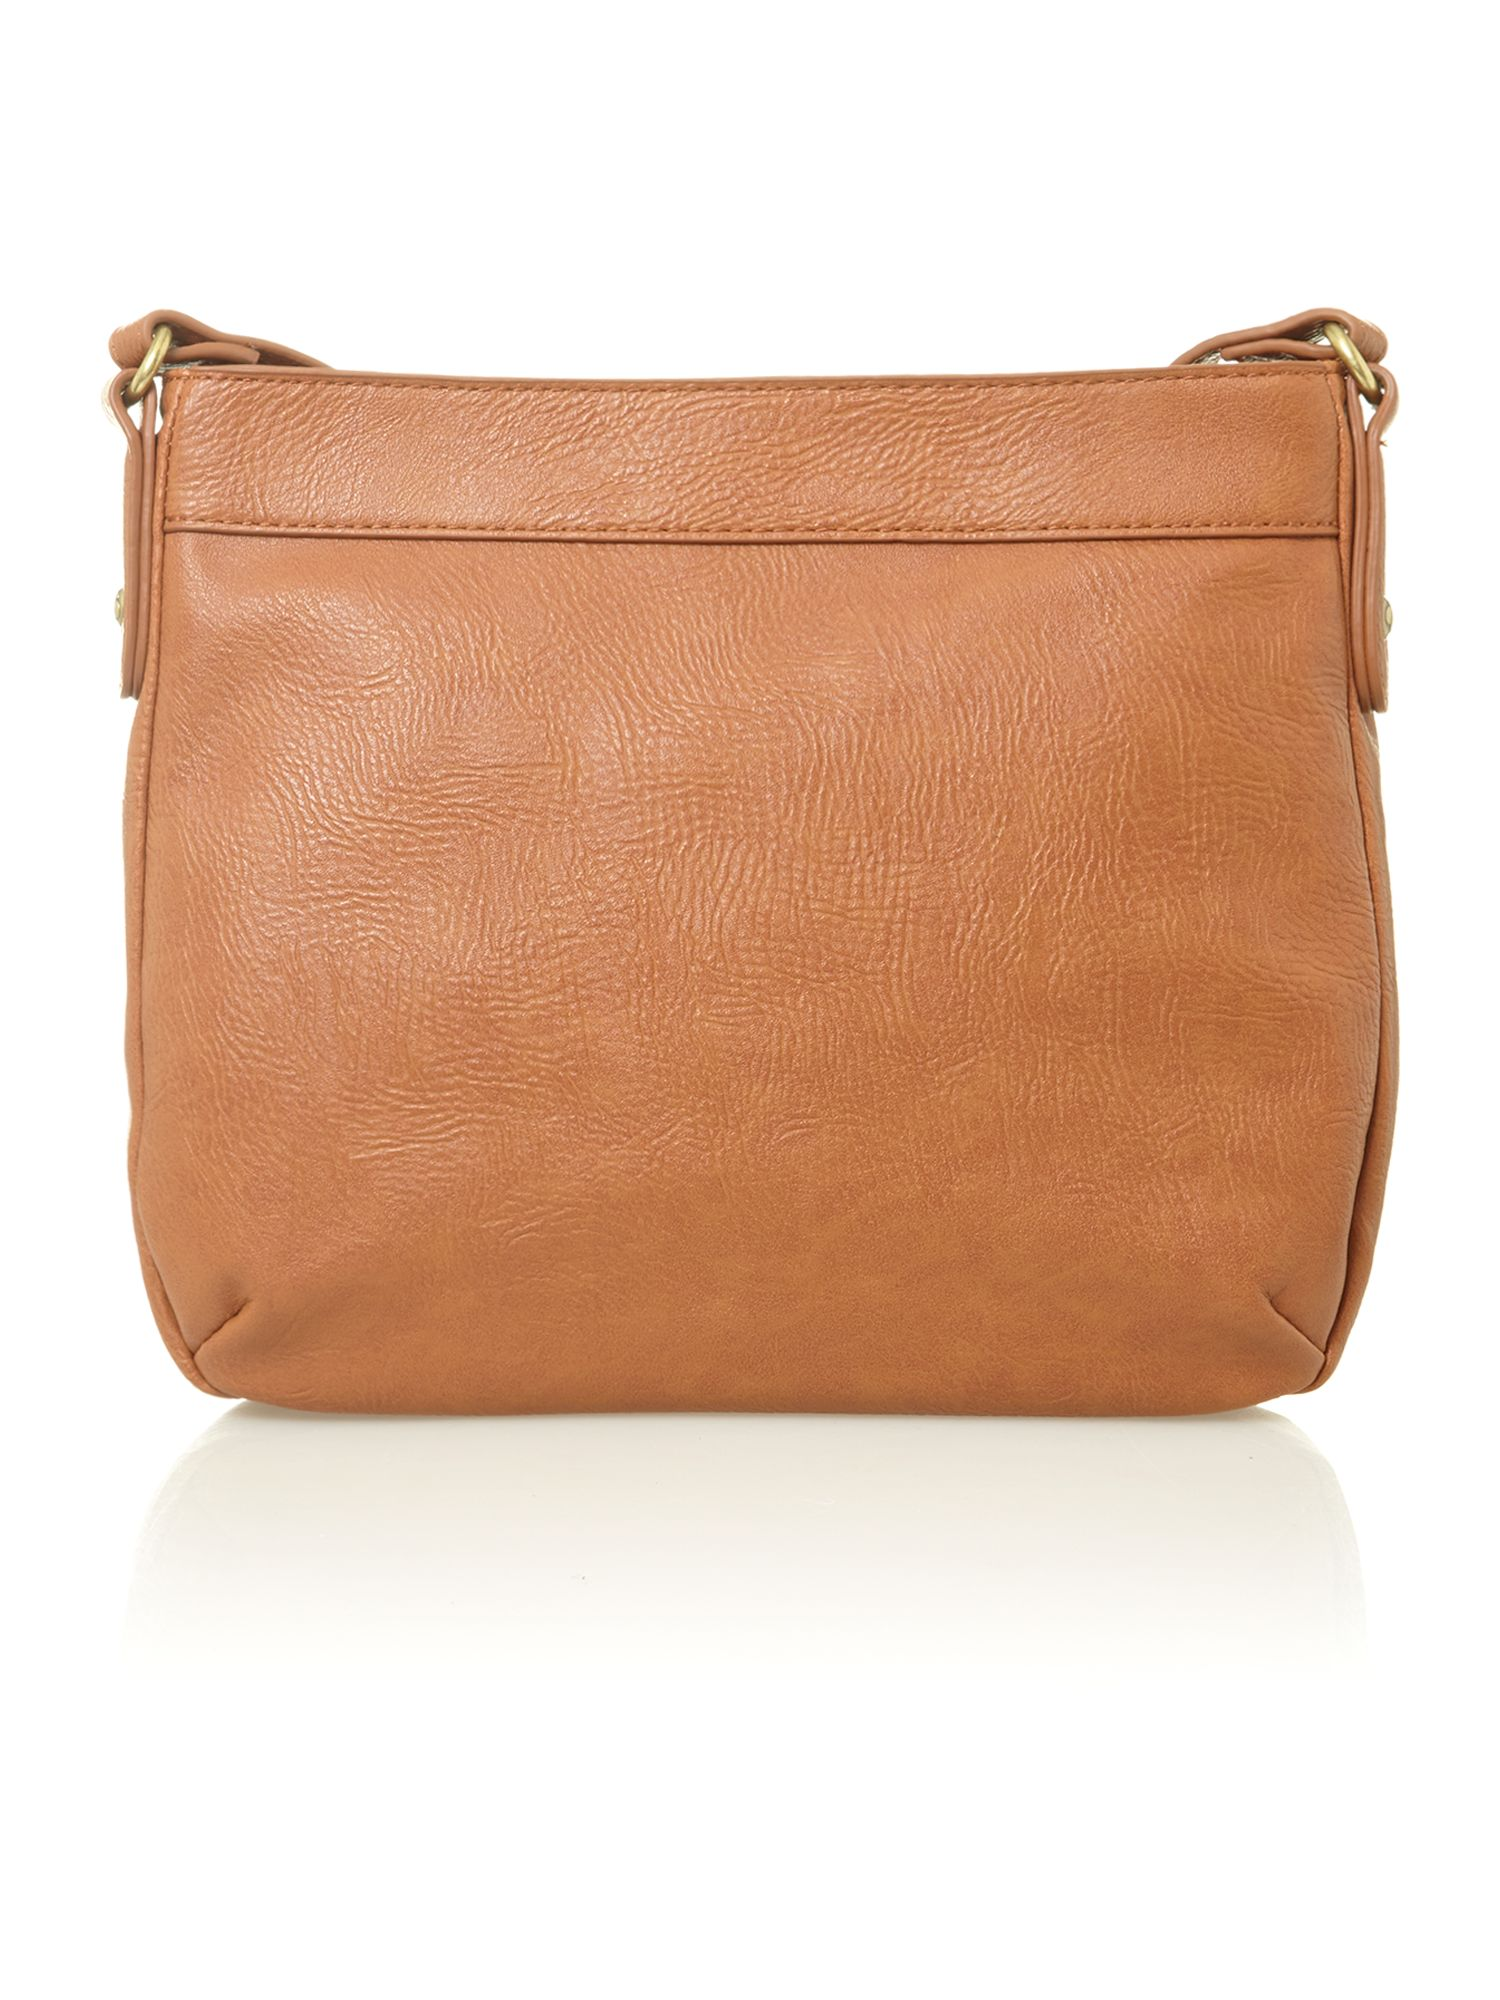 Koper brown cross body bag